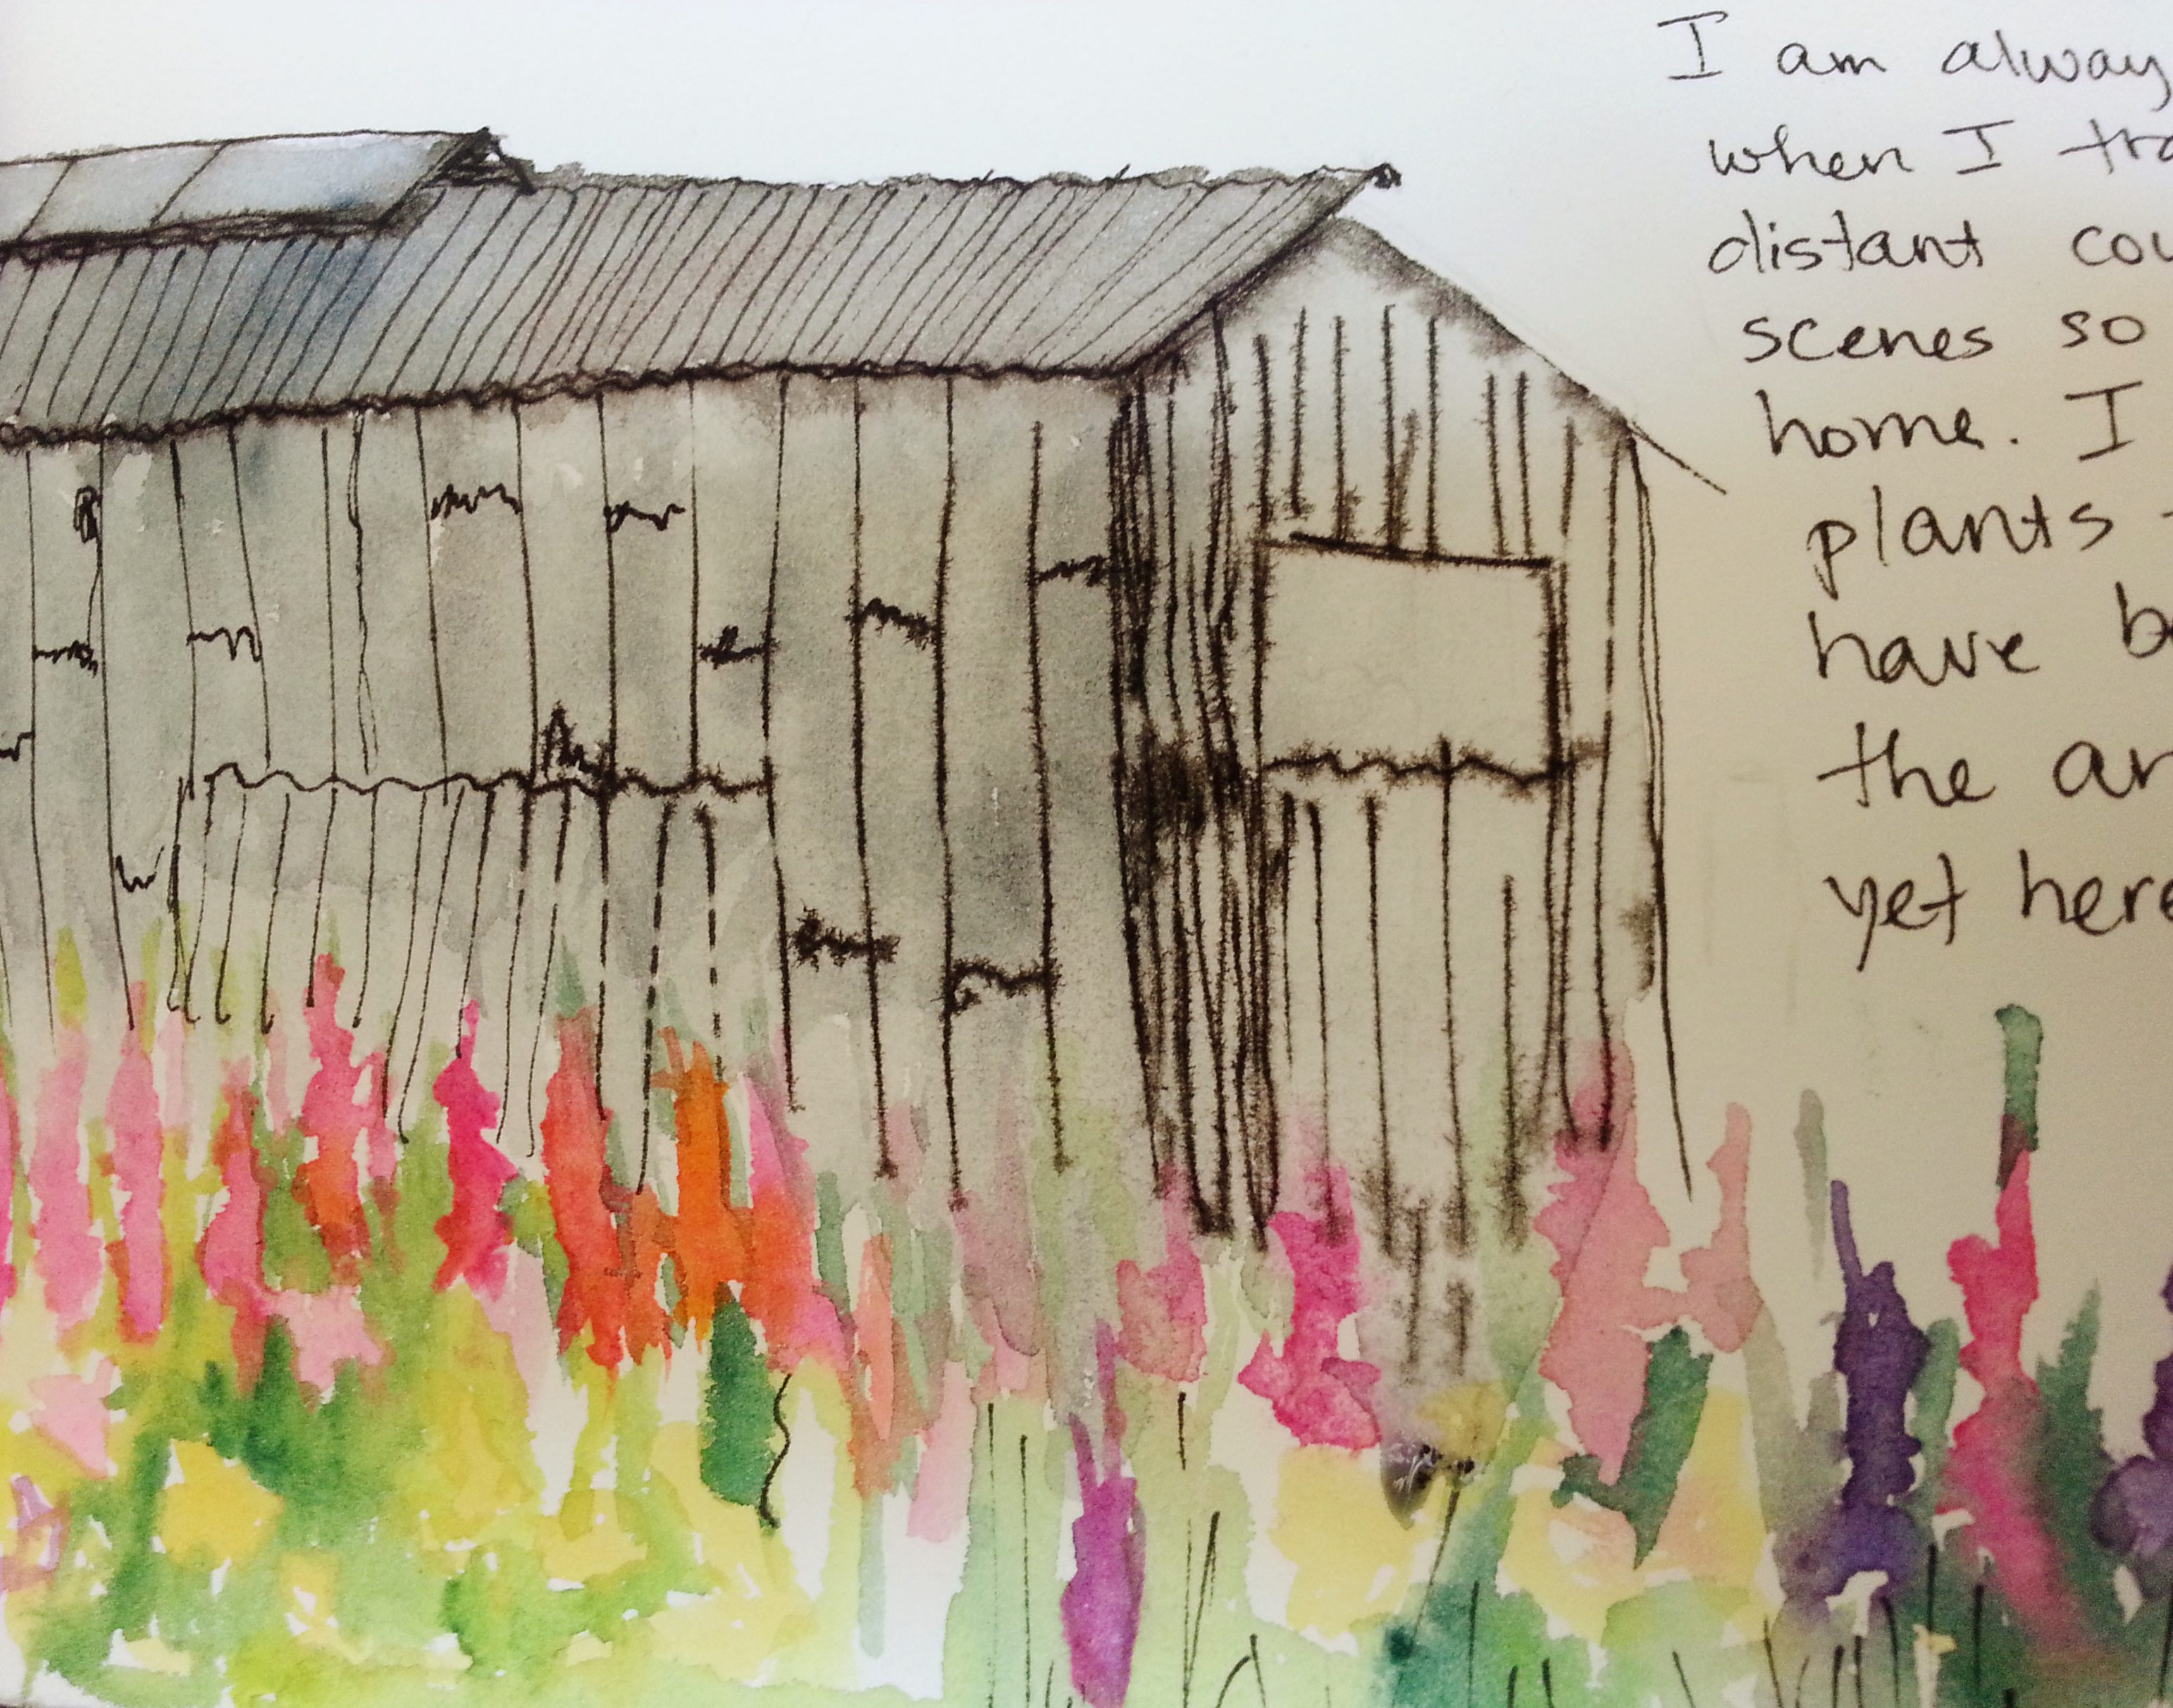 May 27, 2013 I am always surprised when I travel to a far, distant country and see scenes so familiar from home.  I expect the plants to be strange, have become used to the ancient architecture, yet here is a field of hollyhocks underlining an ordinary barn of wood and corrugated tin.